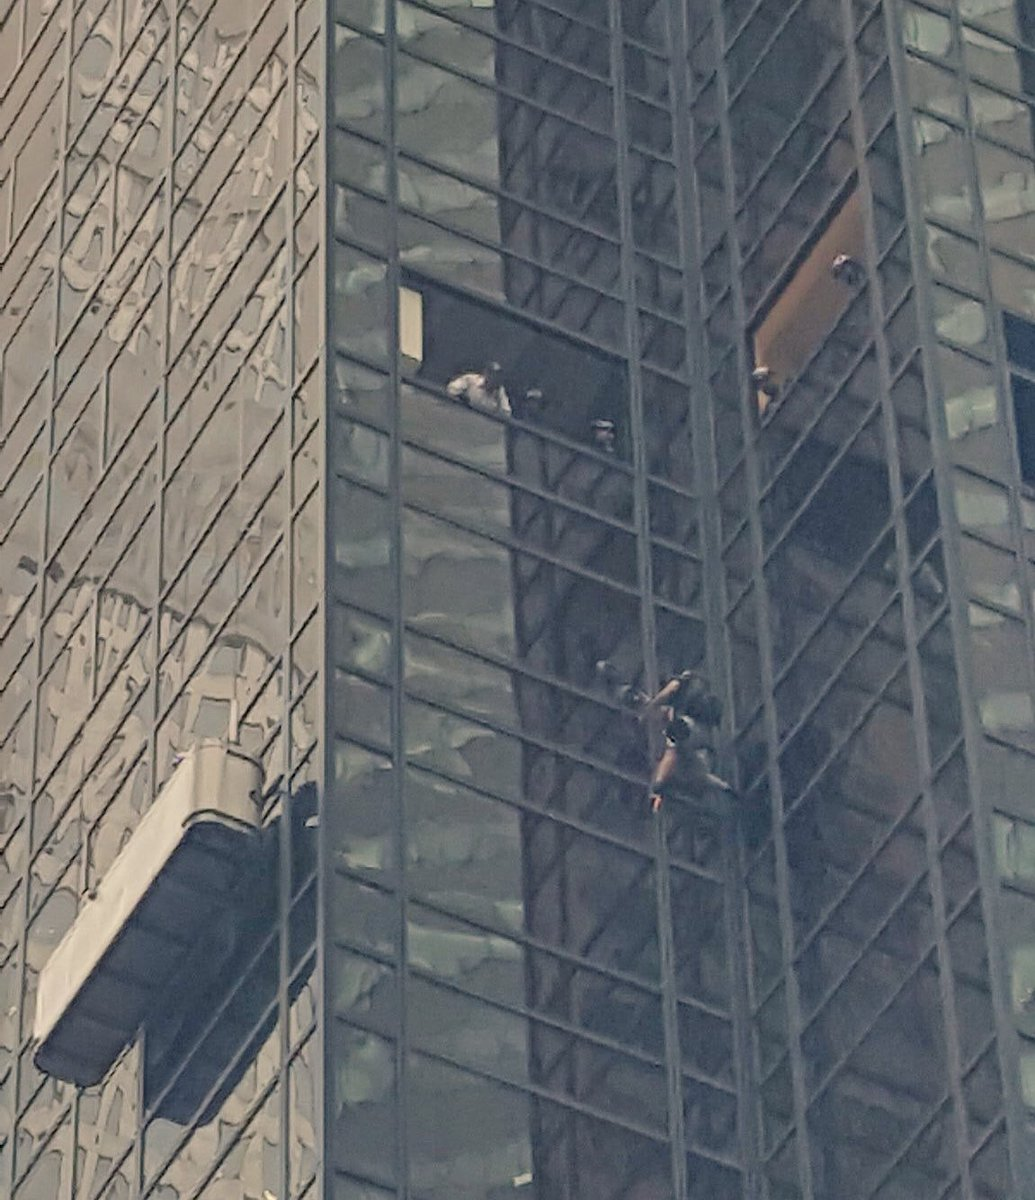 NYPD announces charges against Trump Tower climber